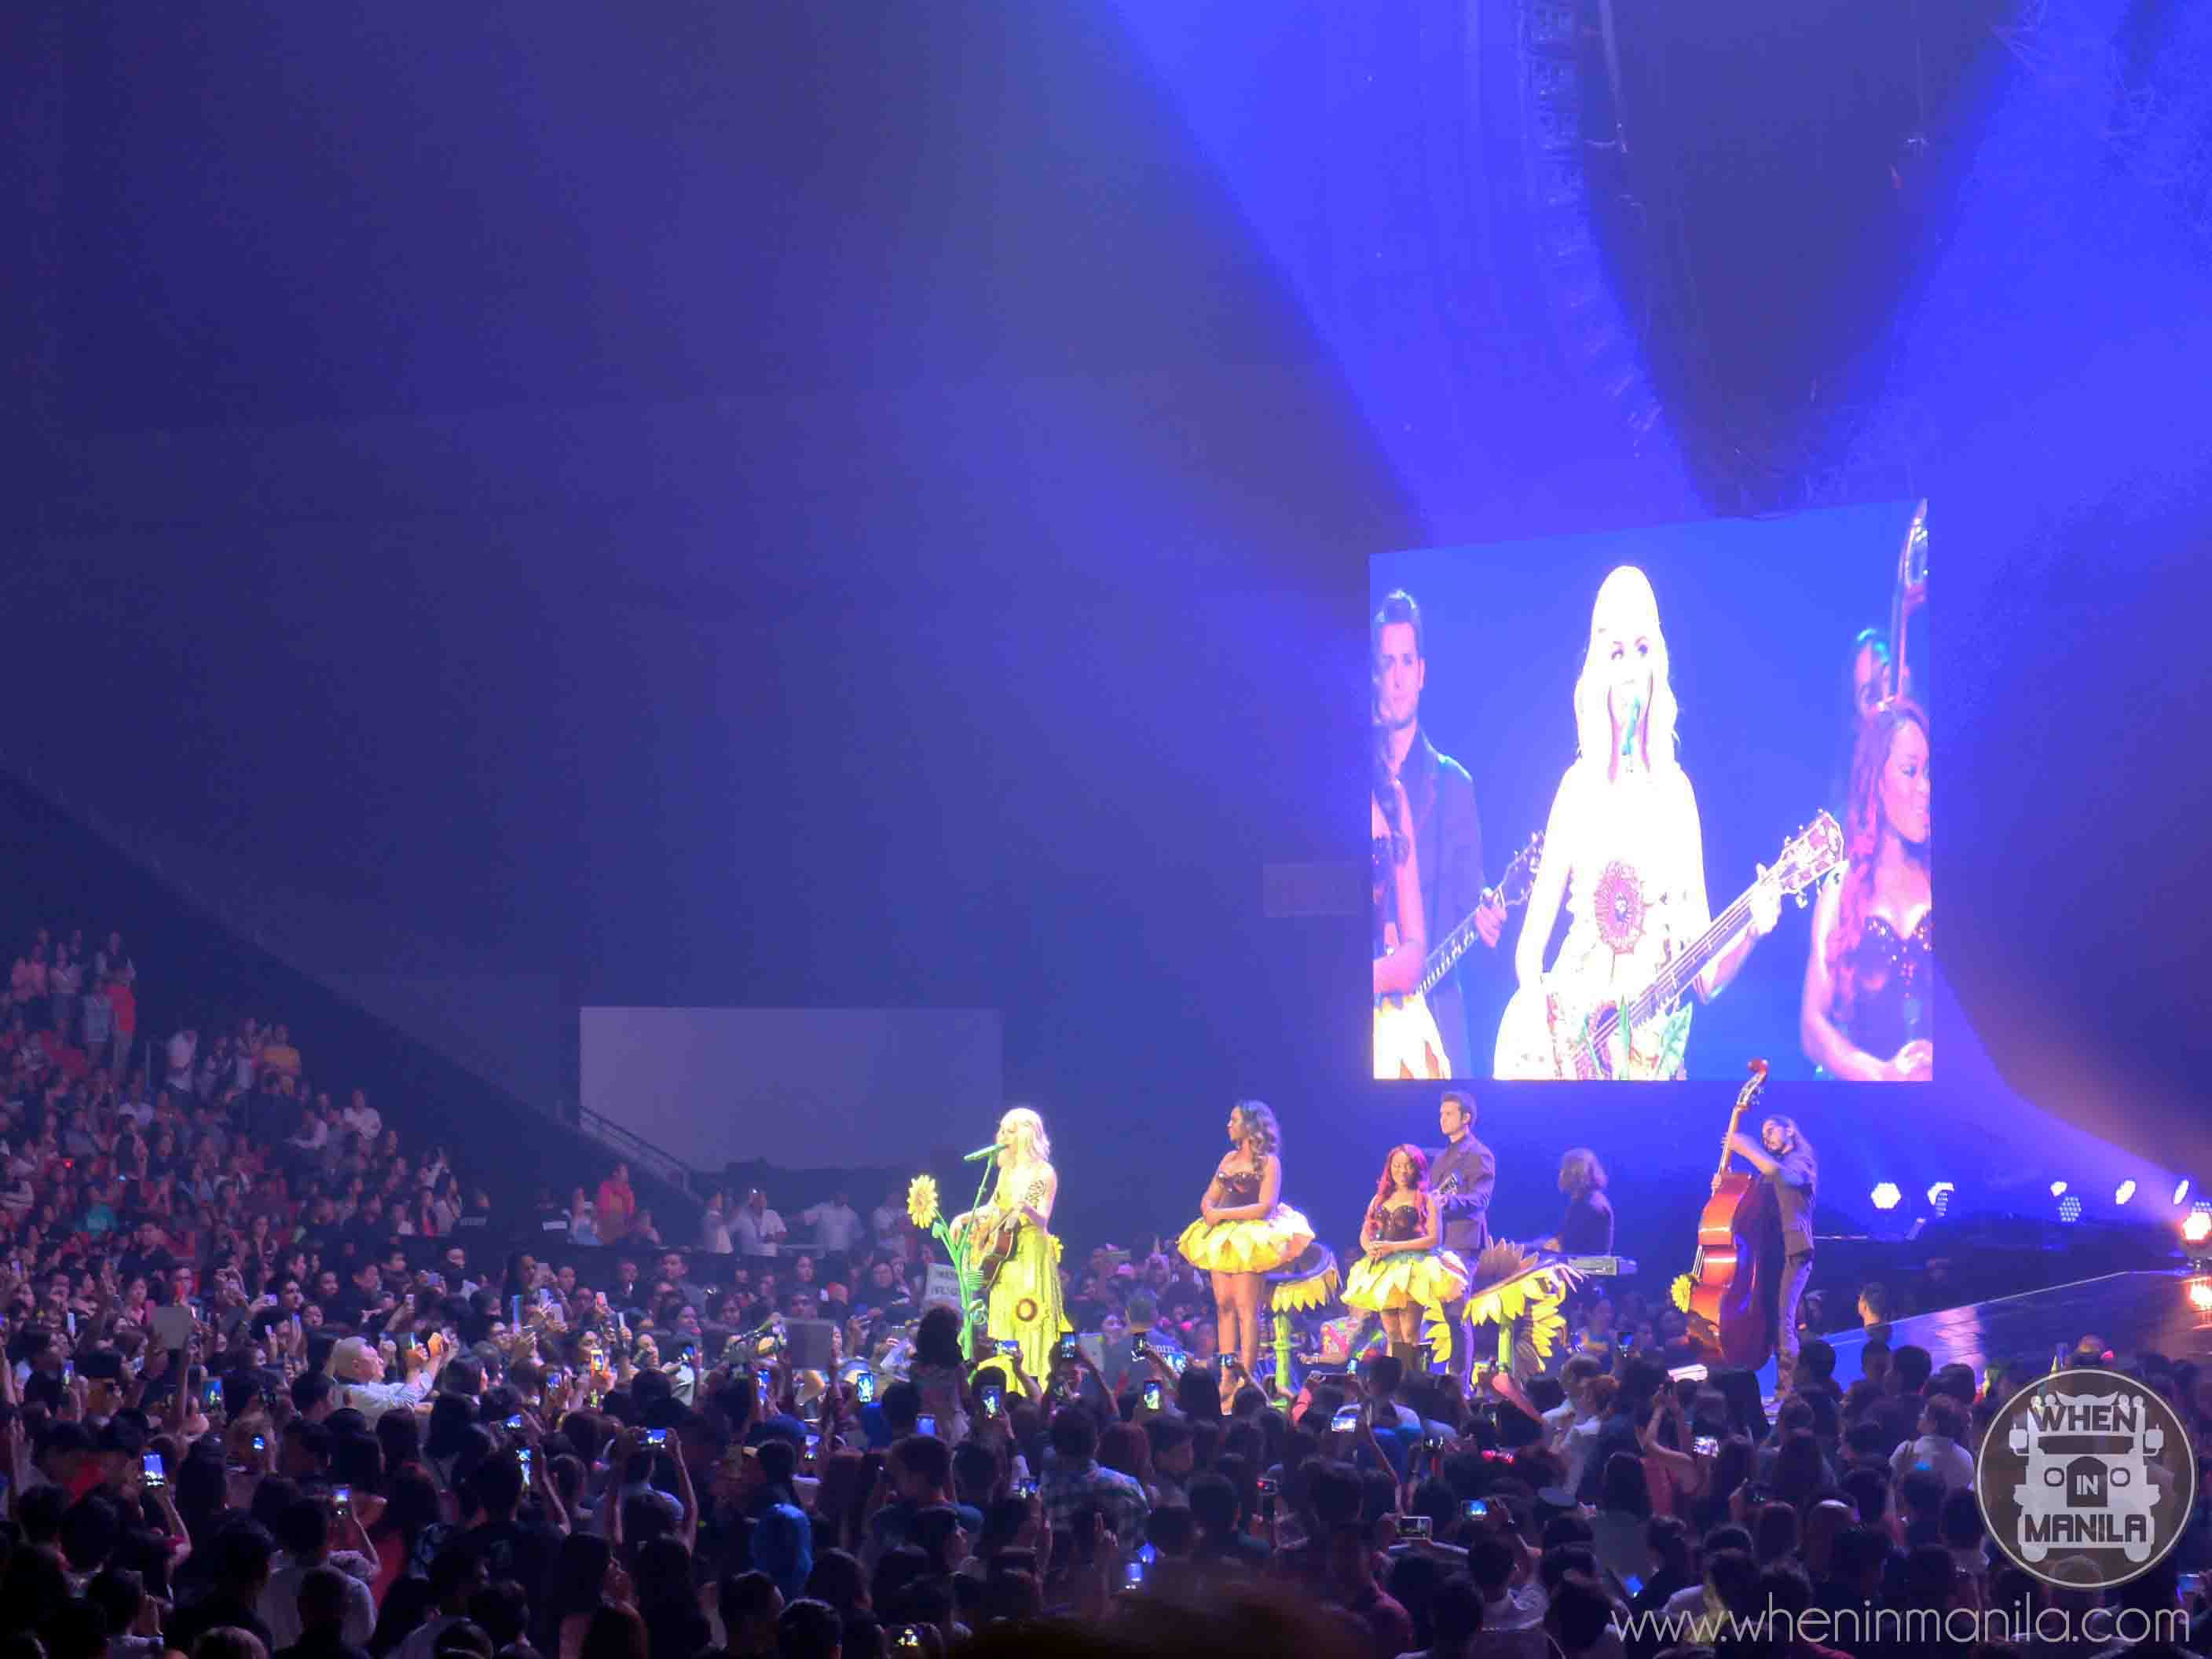 katy perry, katy perry prismatic world tour, prism, katy perry live in manila, philippine arena